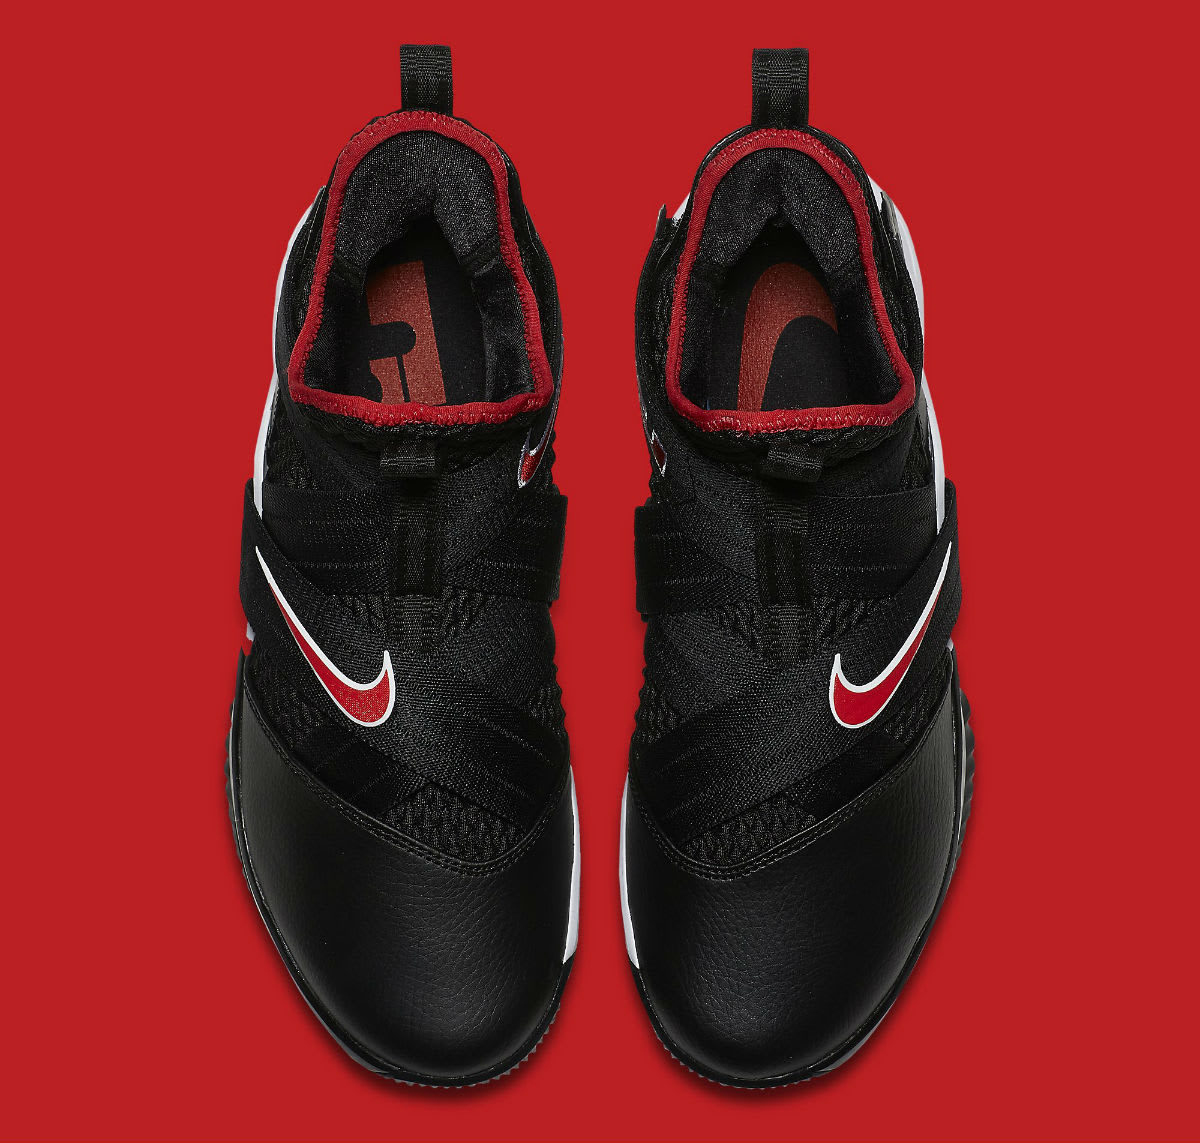 Nike LeBron Soldier 12 Bred Release Date AO4053-001 Top